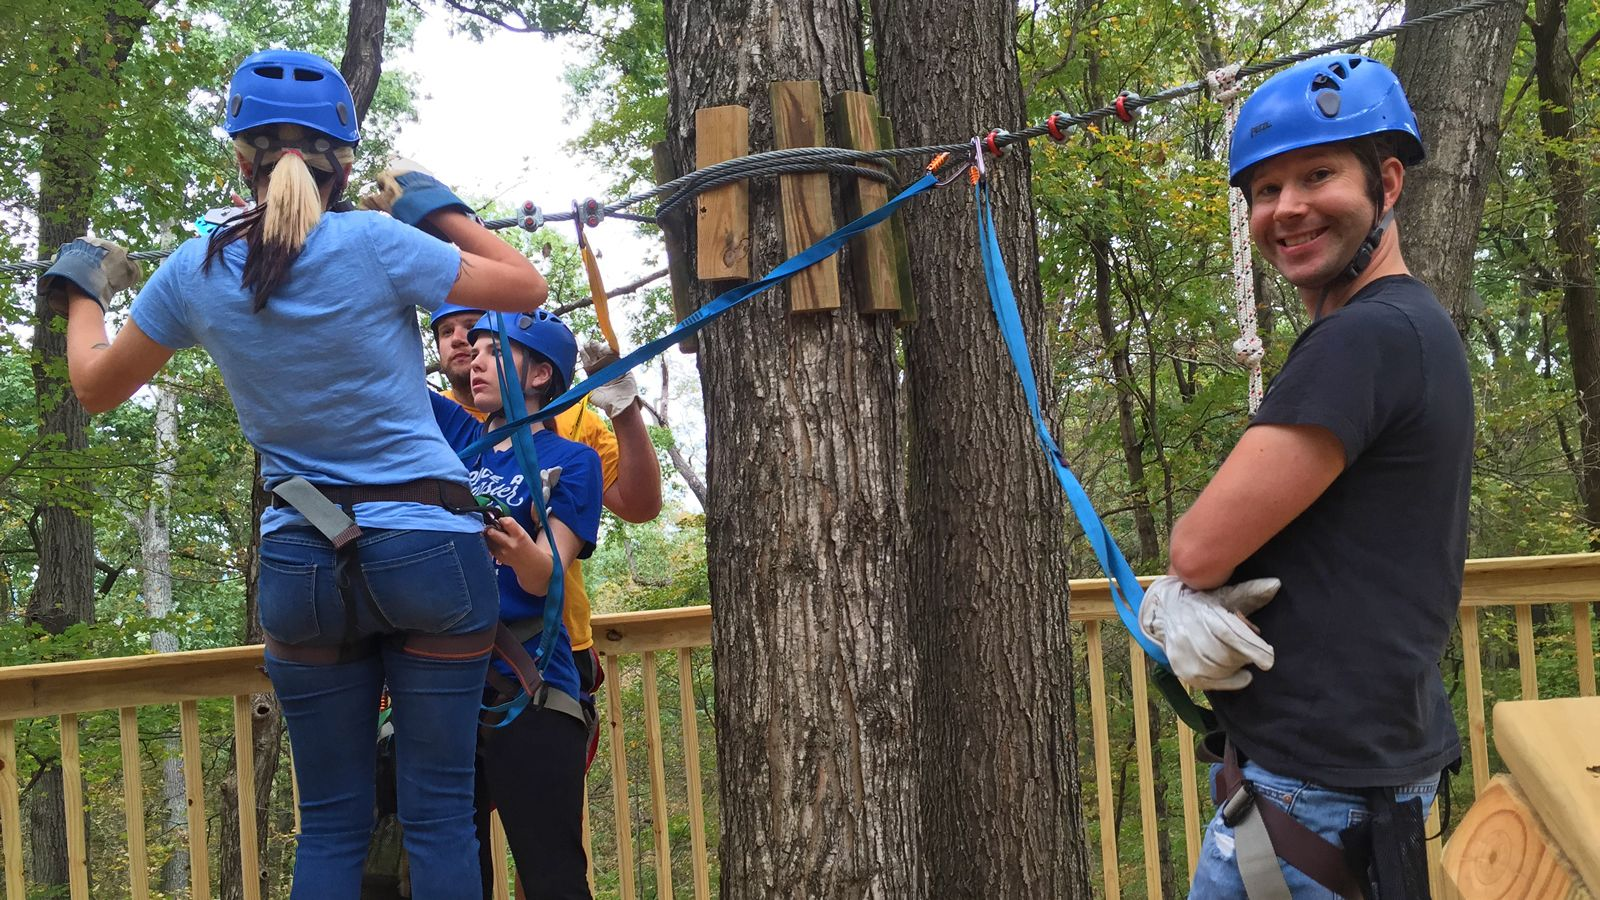 getting geared up for zip lining in Missouri